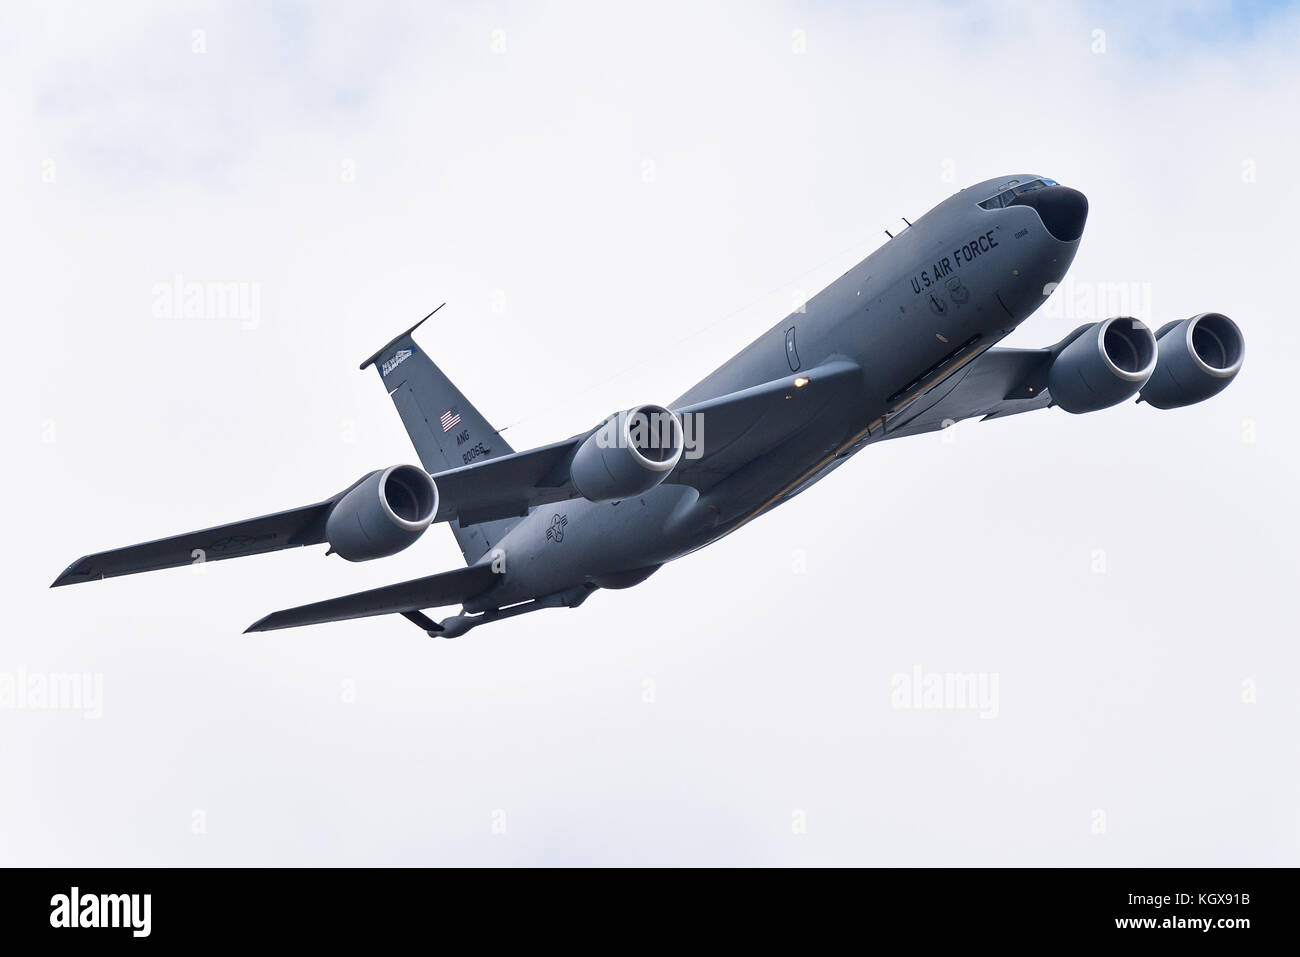 A Boeing KC-135 Stratotanker tanker aircraft of the 157th Air Refueling Wing of the New Hampshire Air National Guard - Stock Image